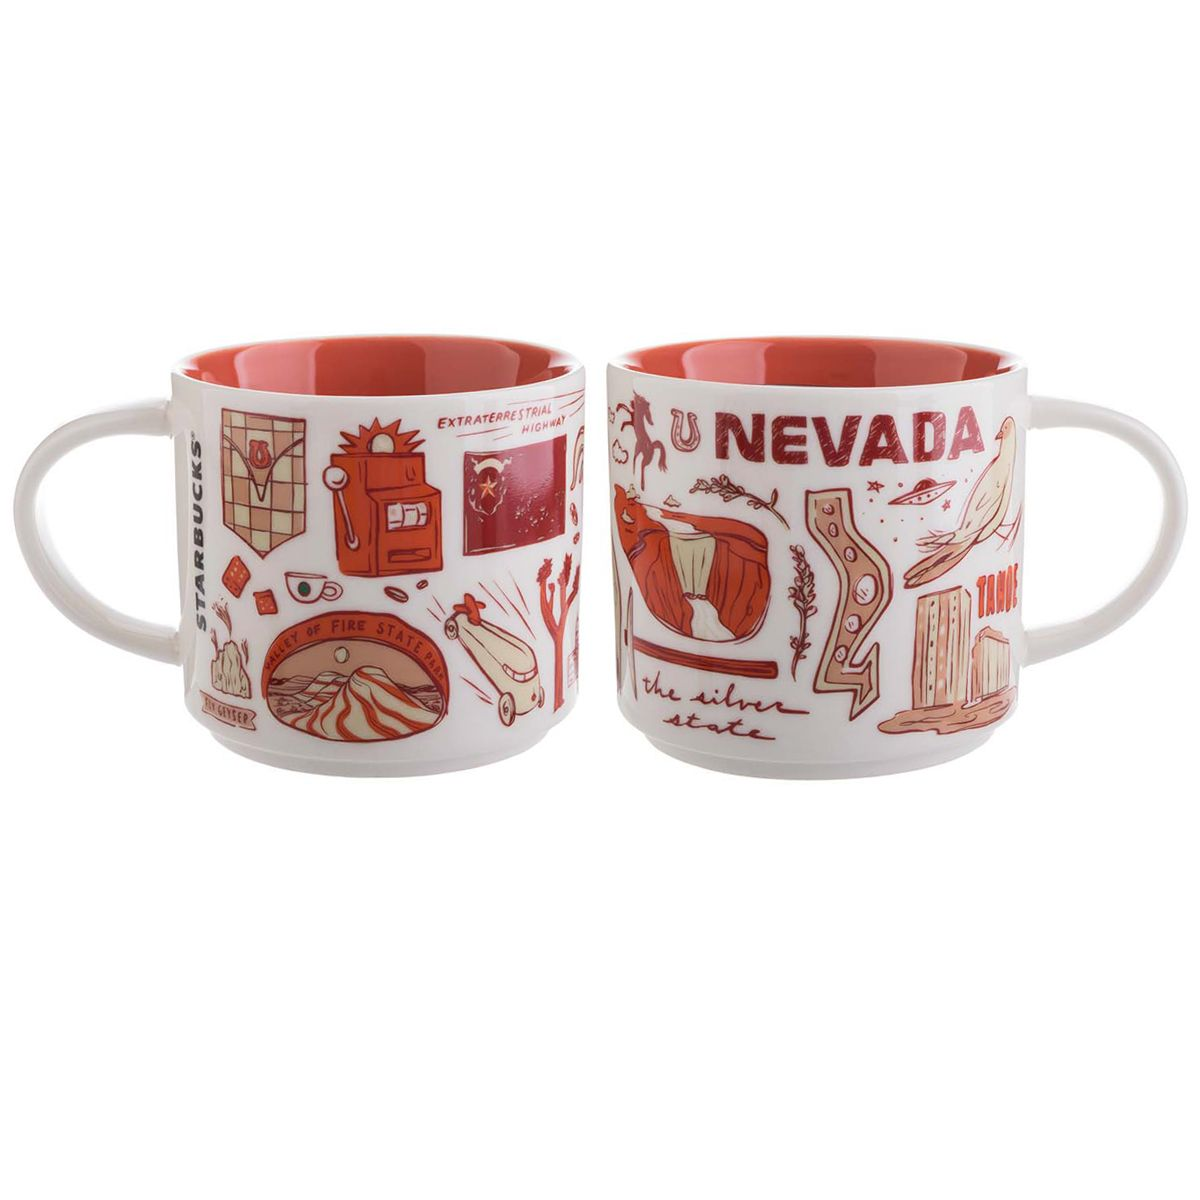 Nevada A Collectible Mug From The Starbucks Been There Collection Starbucks Mugs Best Starbucks Coffee Starbucks Lovers